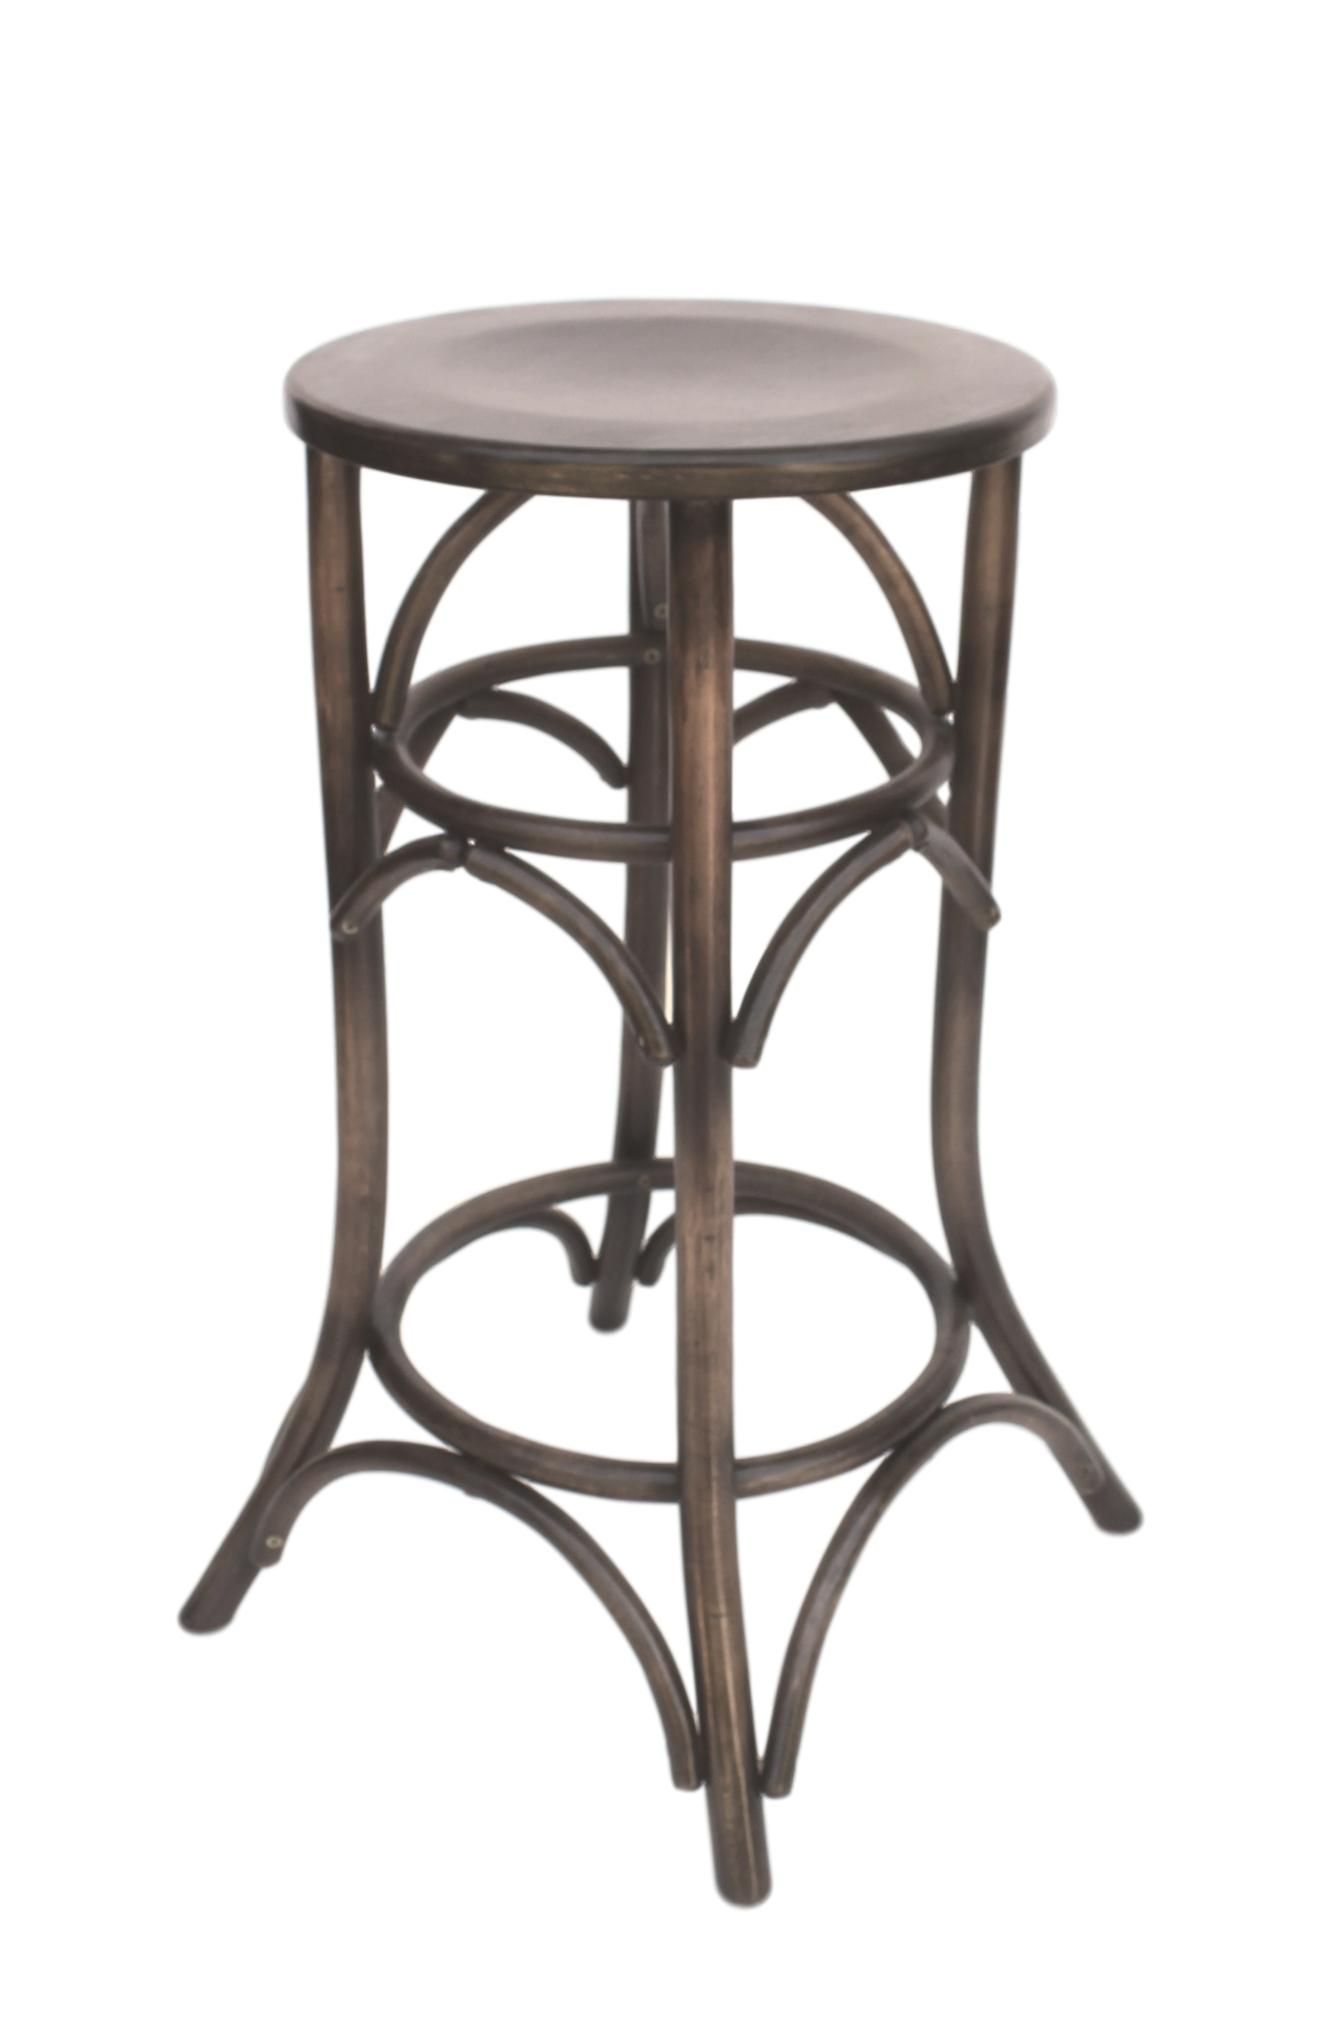 Purchase Bar tabouret in USA